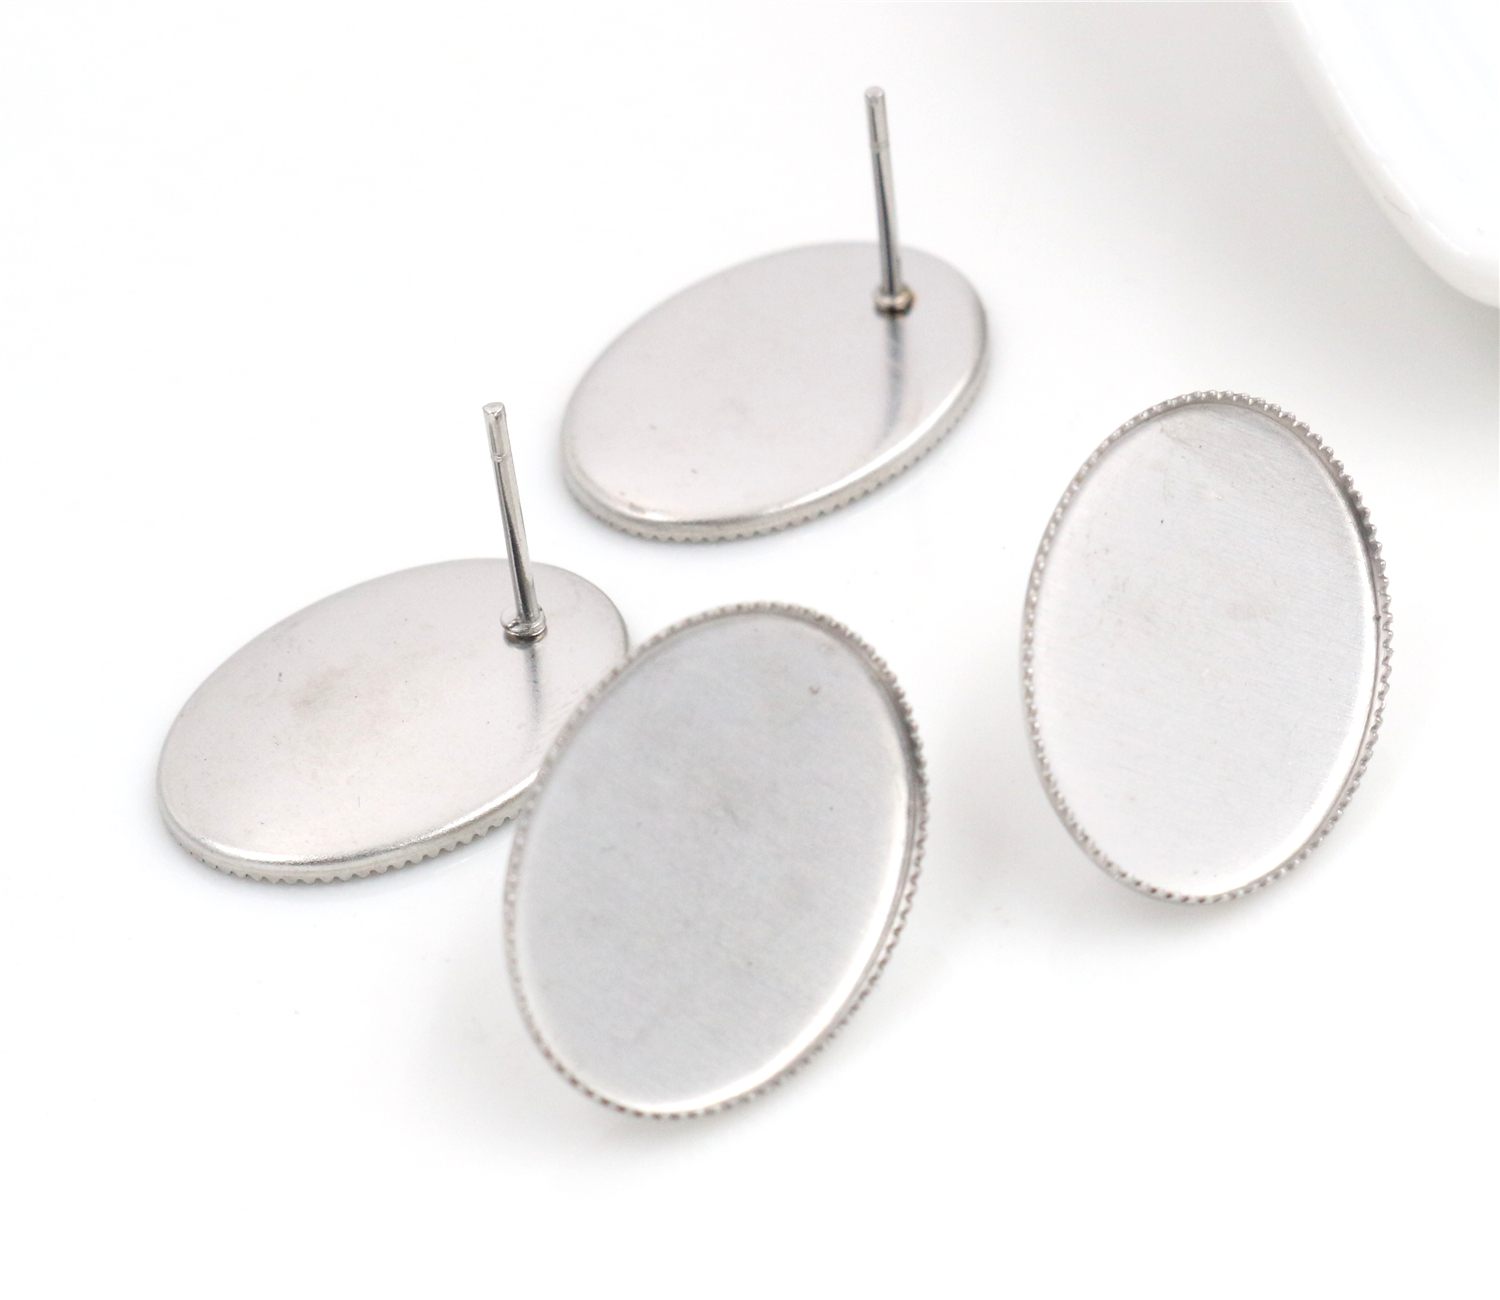 ( No Fade ) 13x18mm 20pcs/Lot 316 Stainless Steel Oval Earring Studs,Earrings Blank/Base,Fit 13*18mm Oval Glass Cabochons-O3-37( No Fade ) 13x18mm 20pcs/Lot 316 Stainless Steel Oval Earring Studs,Earrings Blank/Base,Fit 13*18mm Oval Glass Cabochons-O3-37